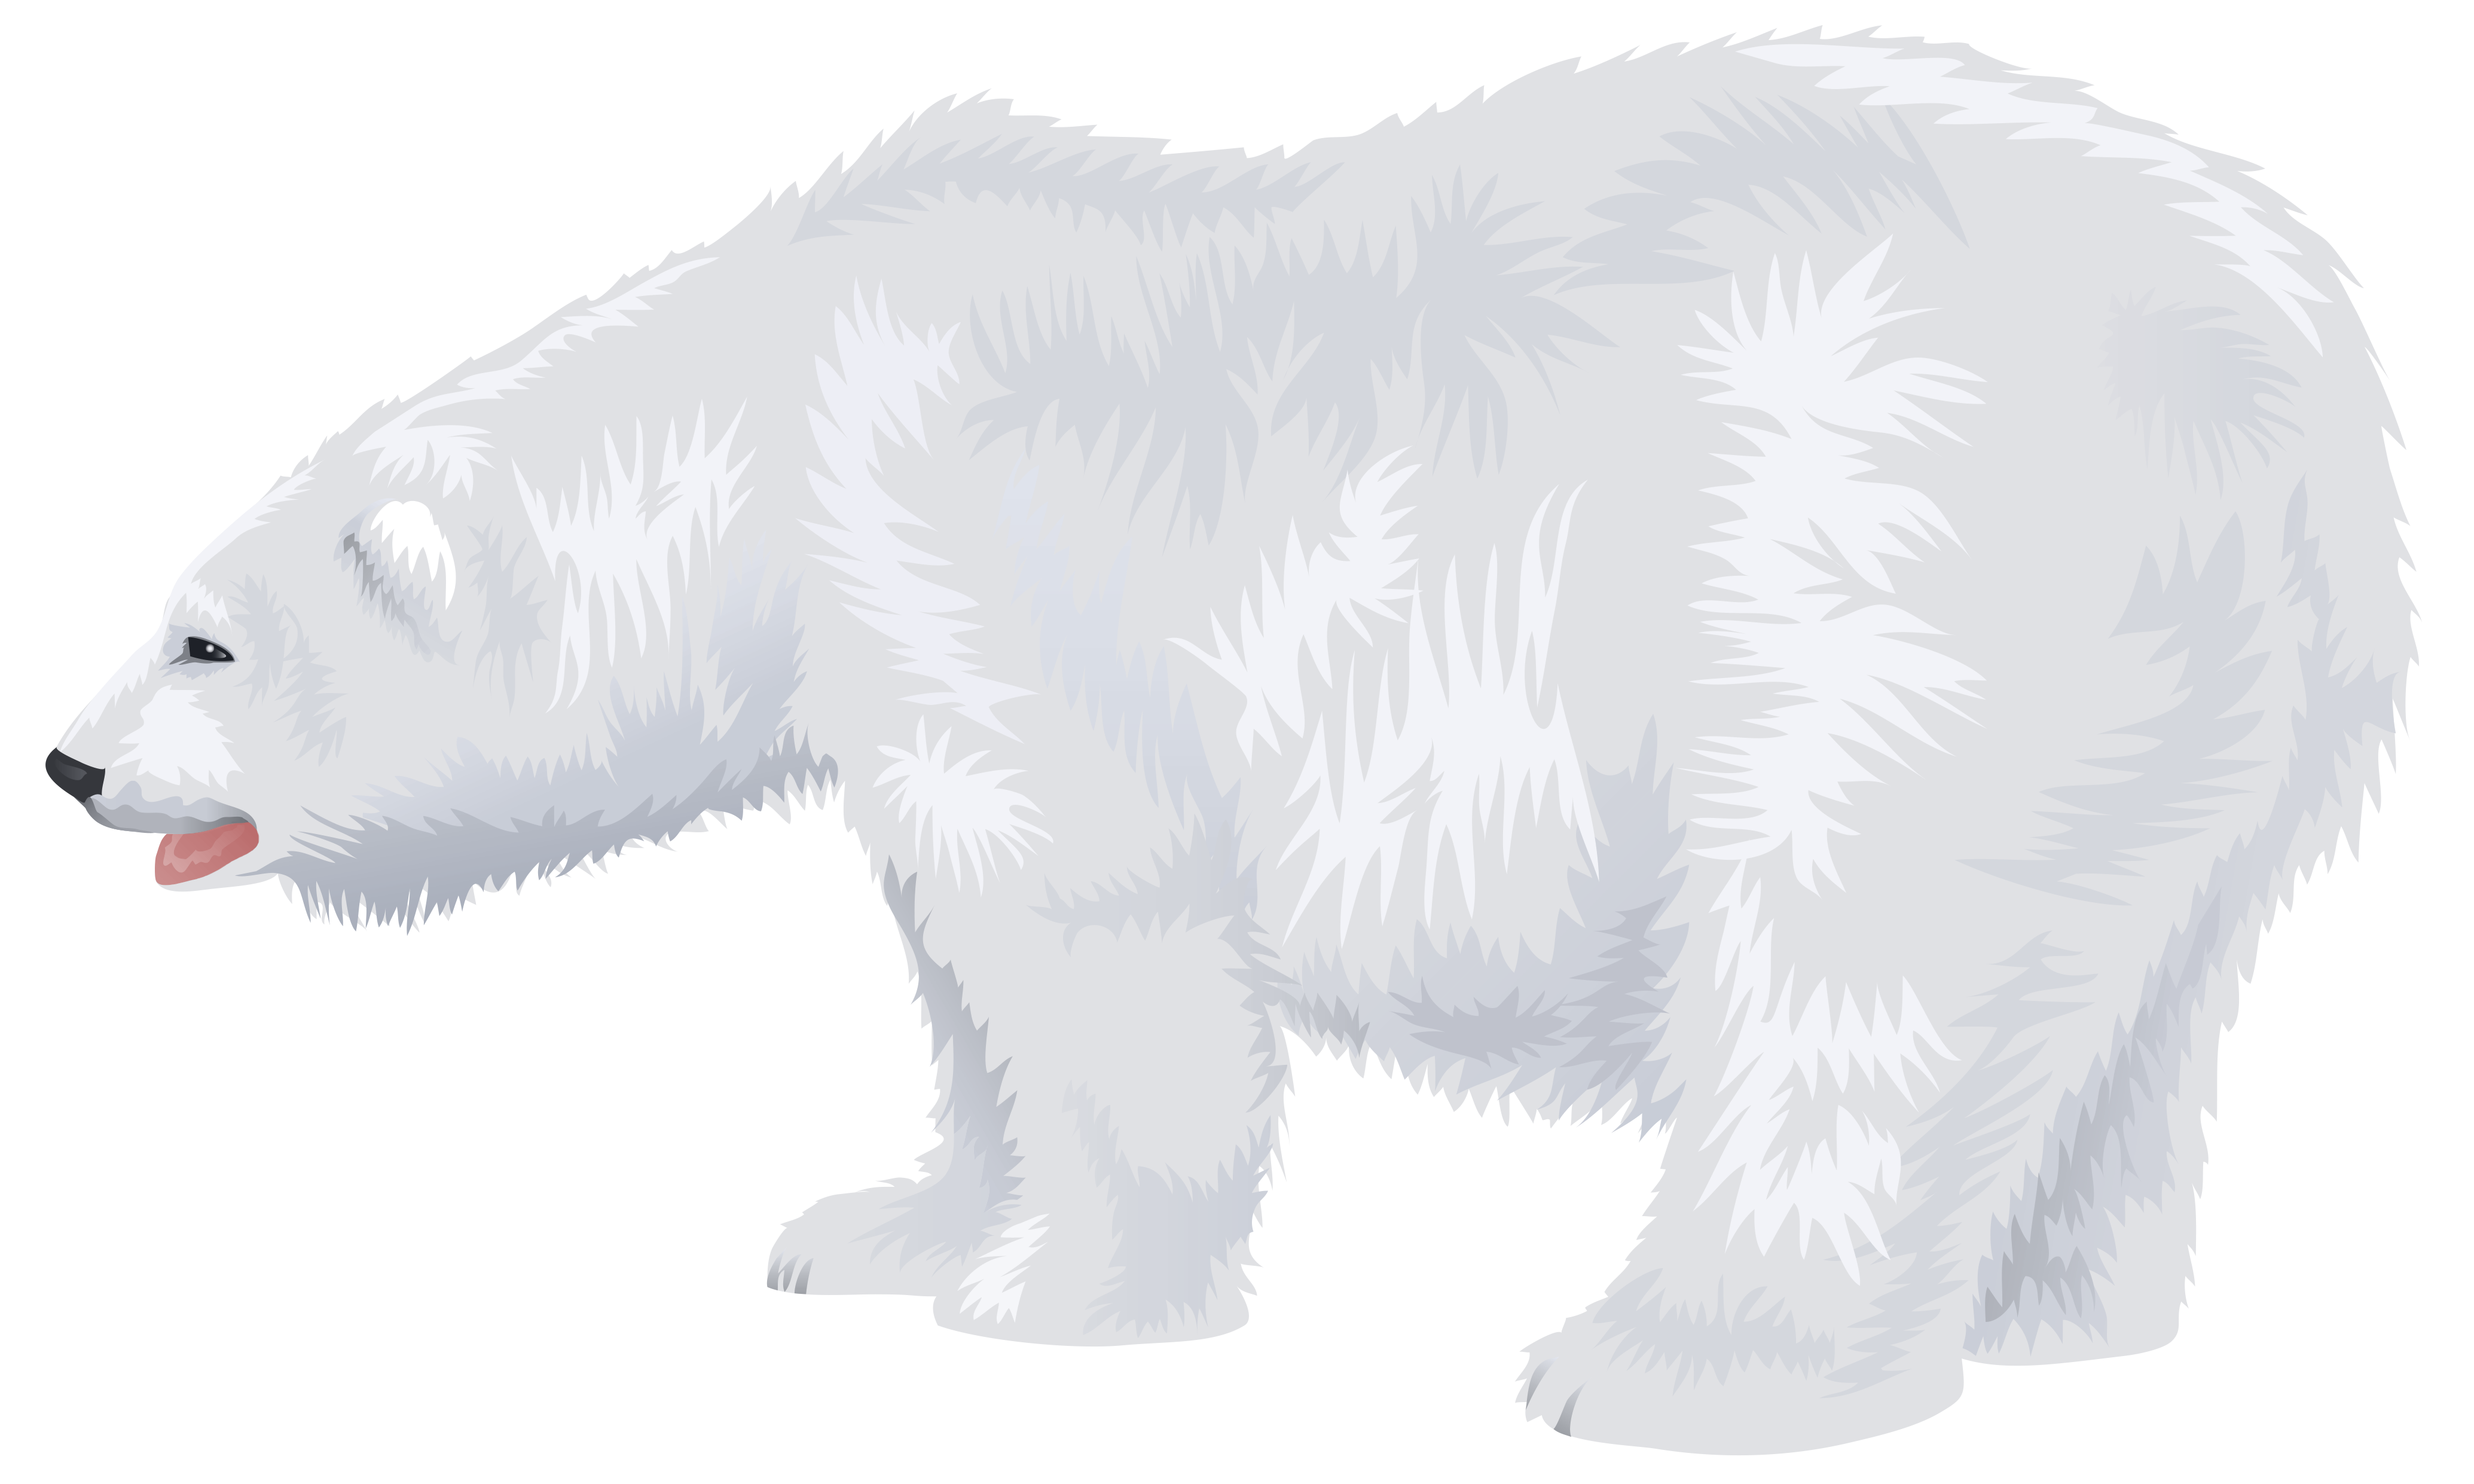 White polar png image. Bear clip art transparent background image library library